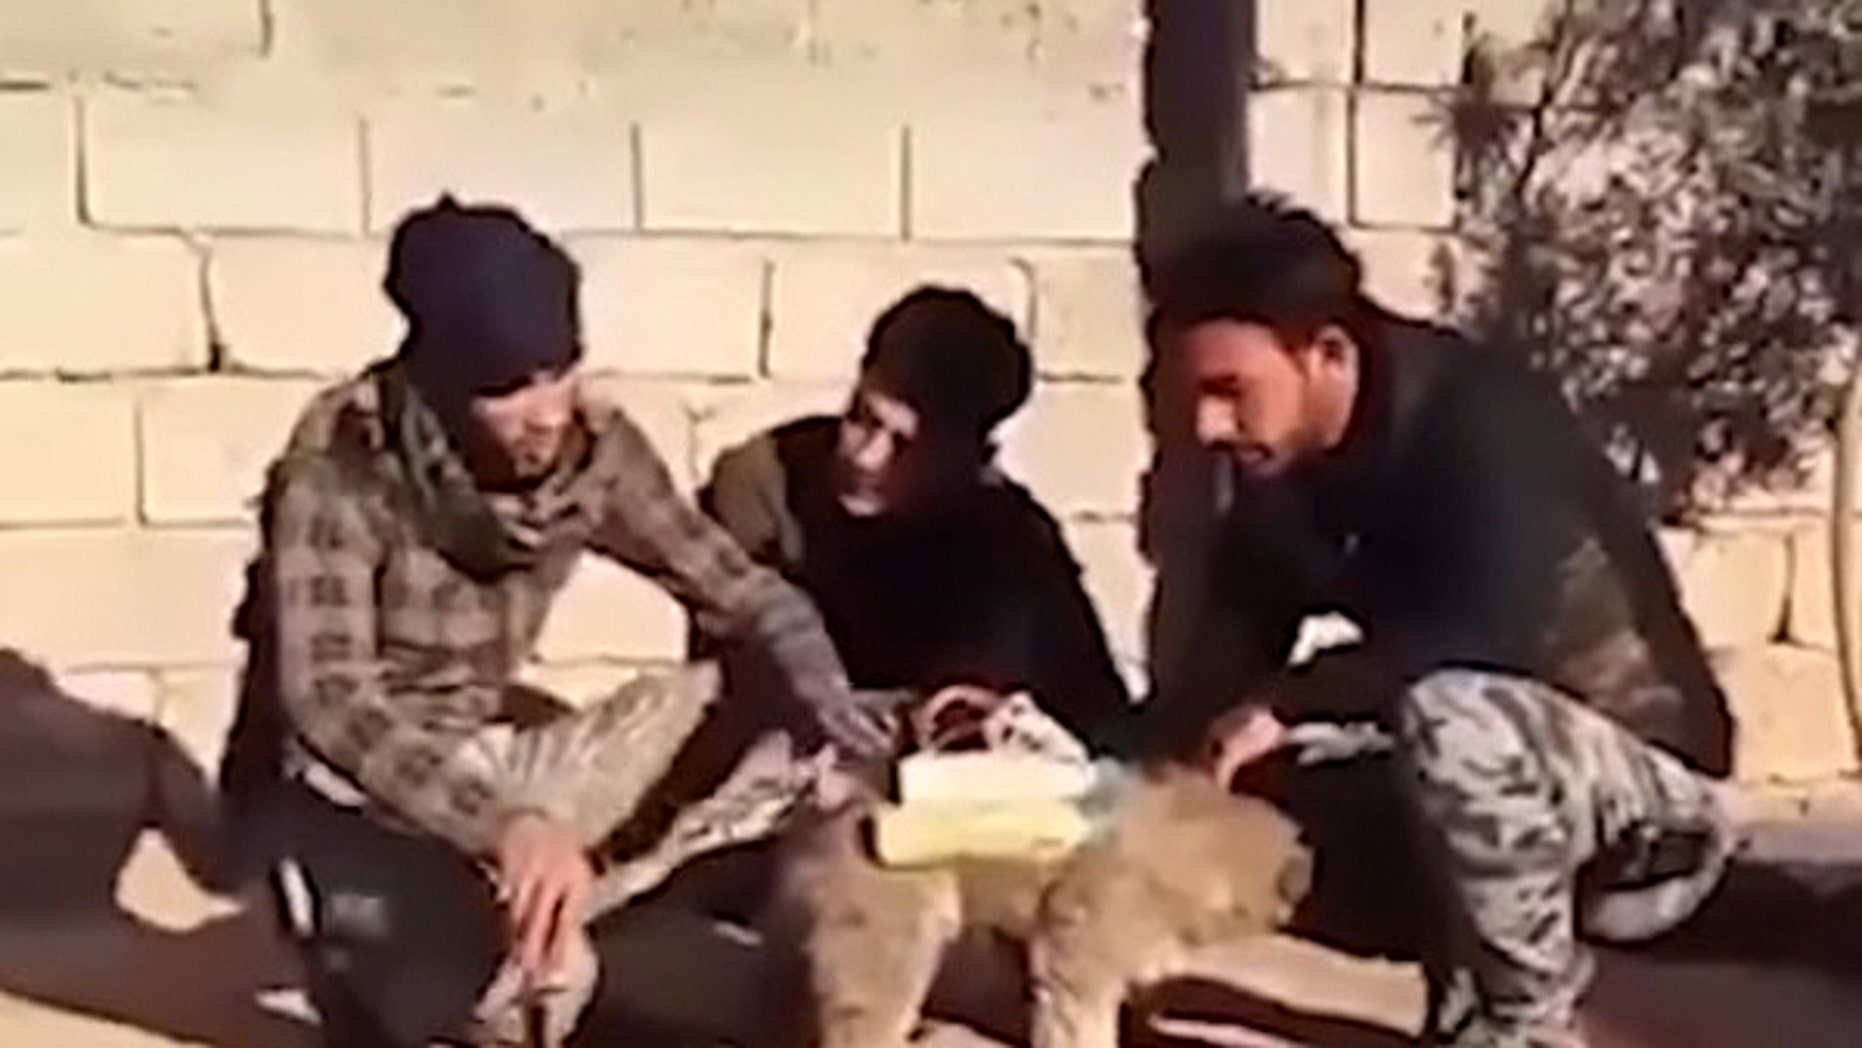 A group of Iraqi militia fighters claim on a video posted on youtube that they found this dog outfitted with a makeshift bomb.